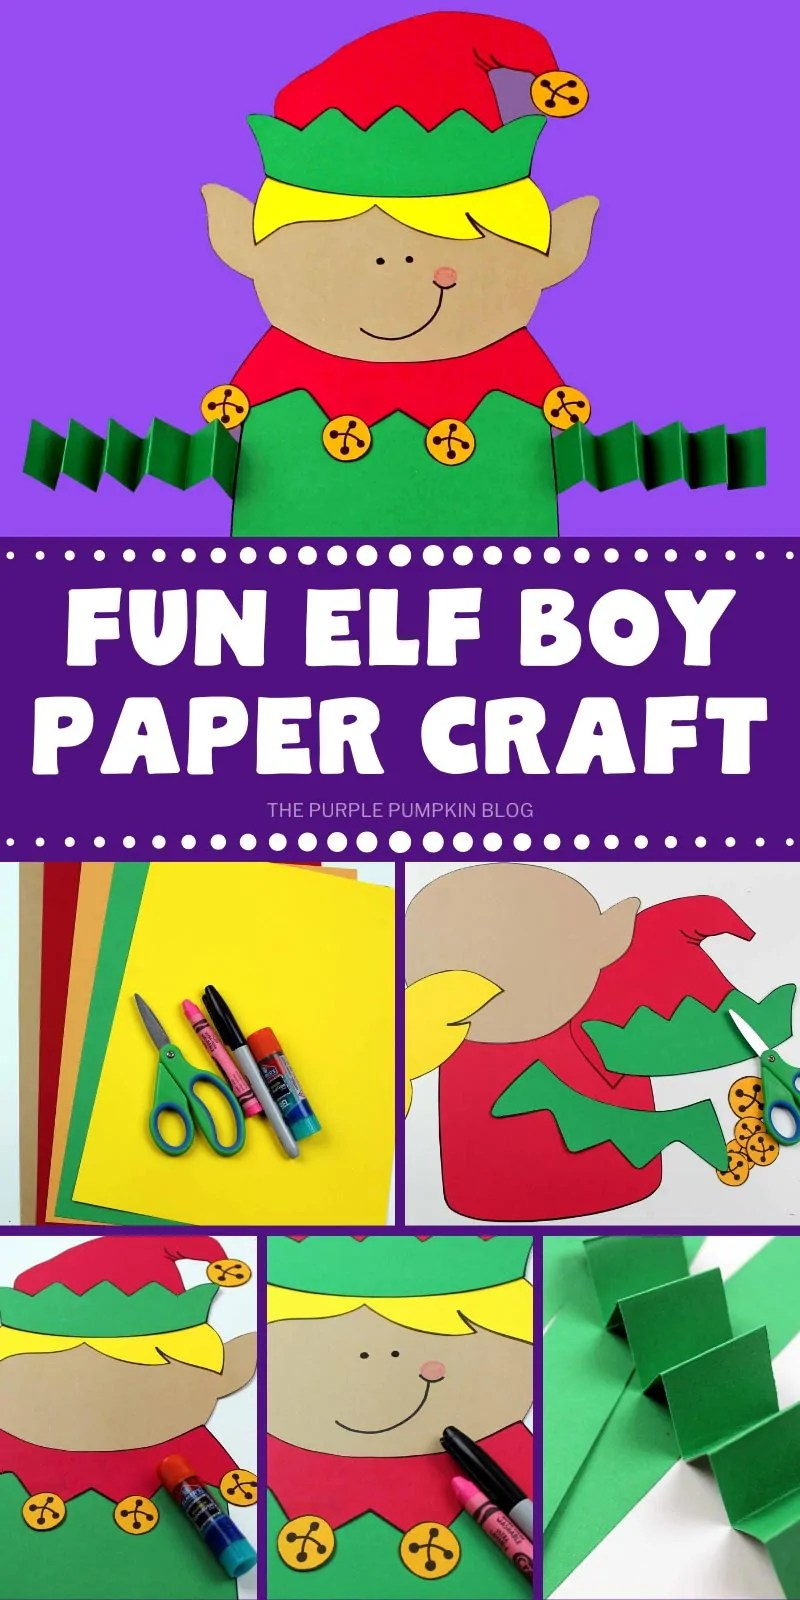 Fun Elf Boy Paper Craft with step by step photos